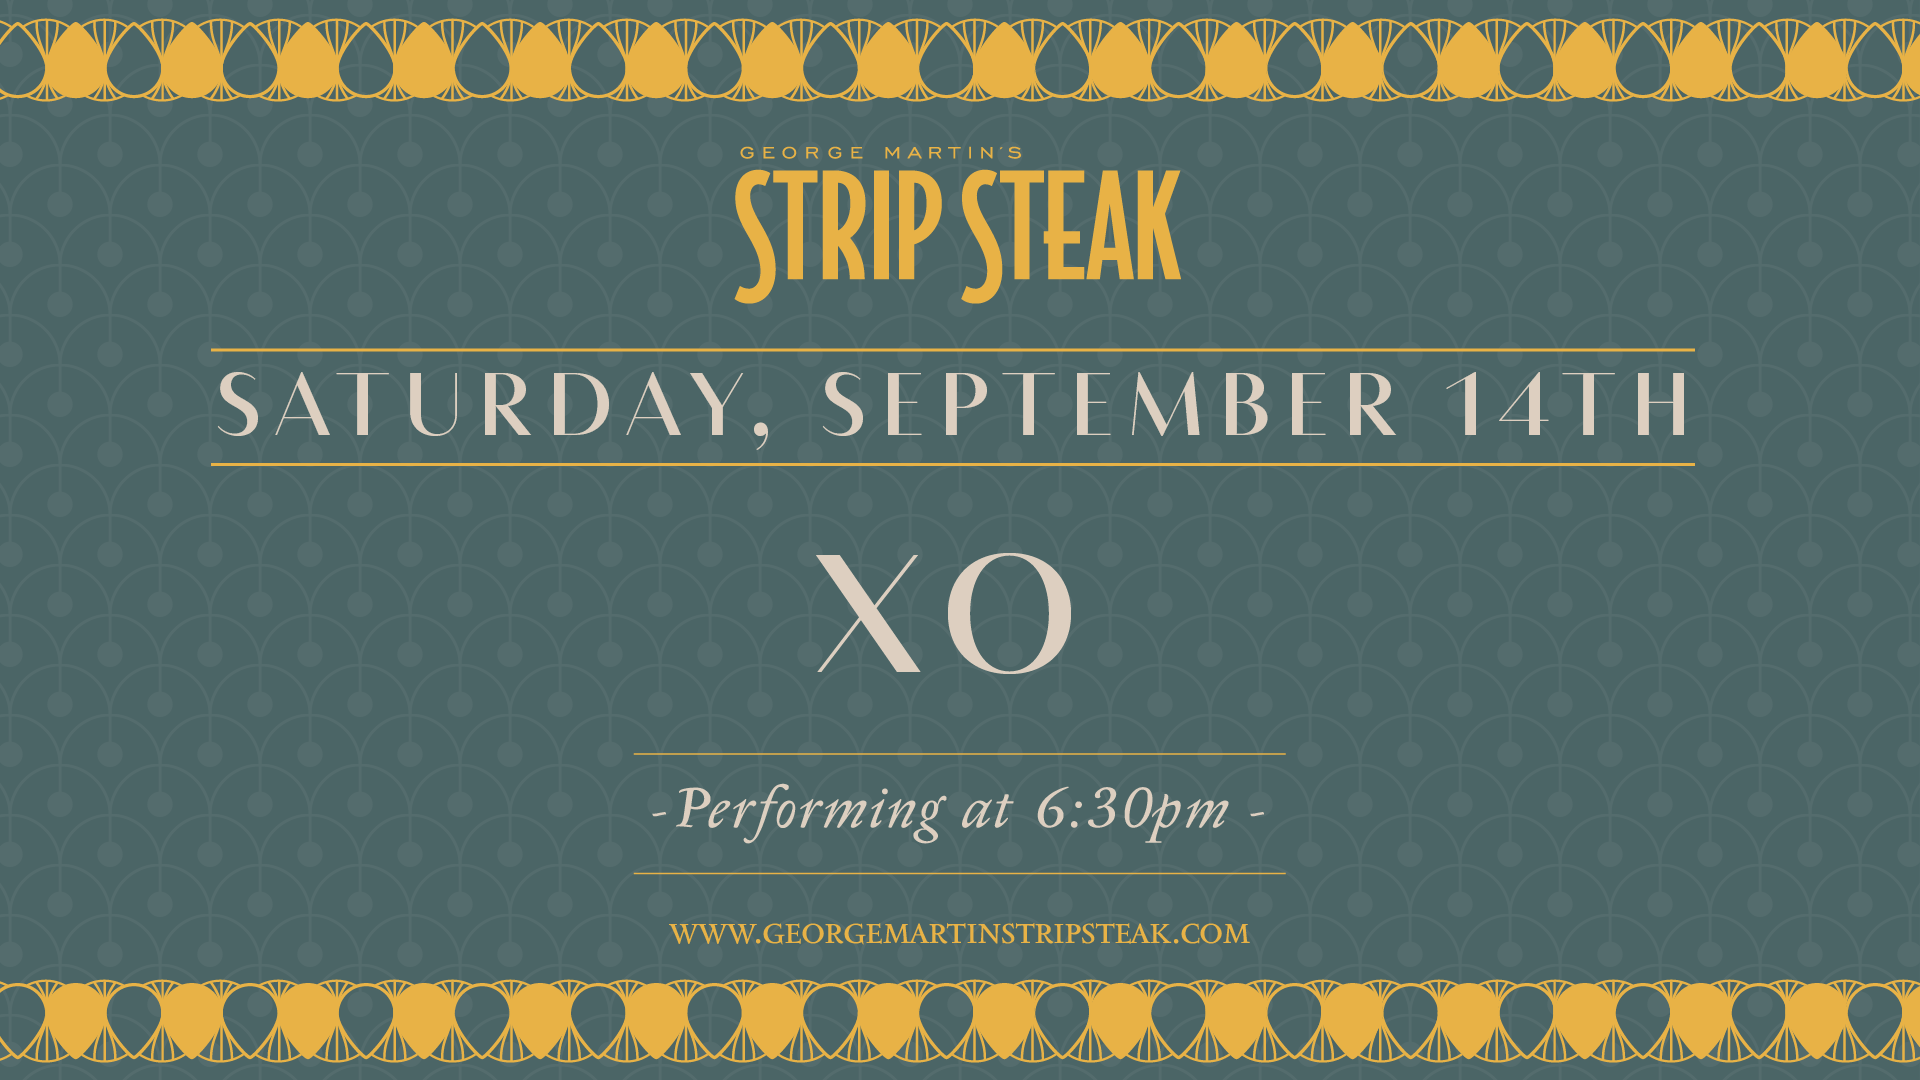 Flyer for XO on Saturday, September 14th at 6:30pm